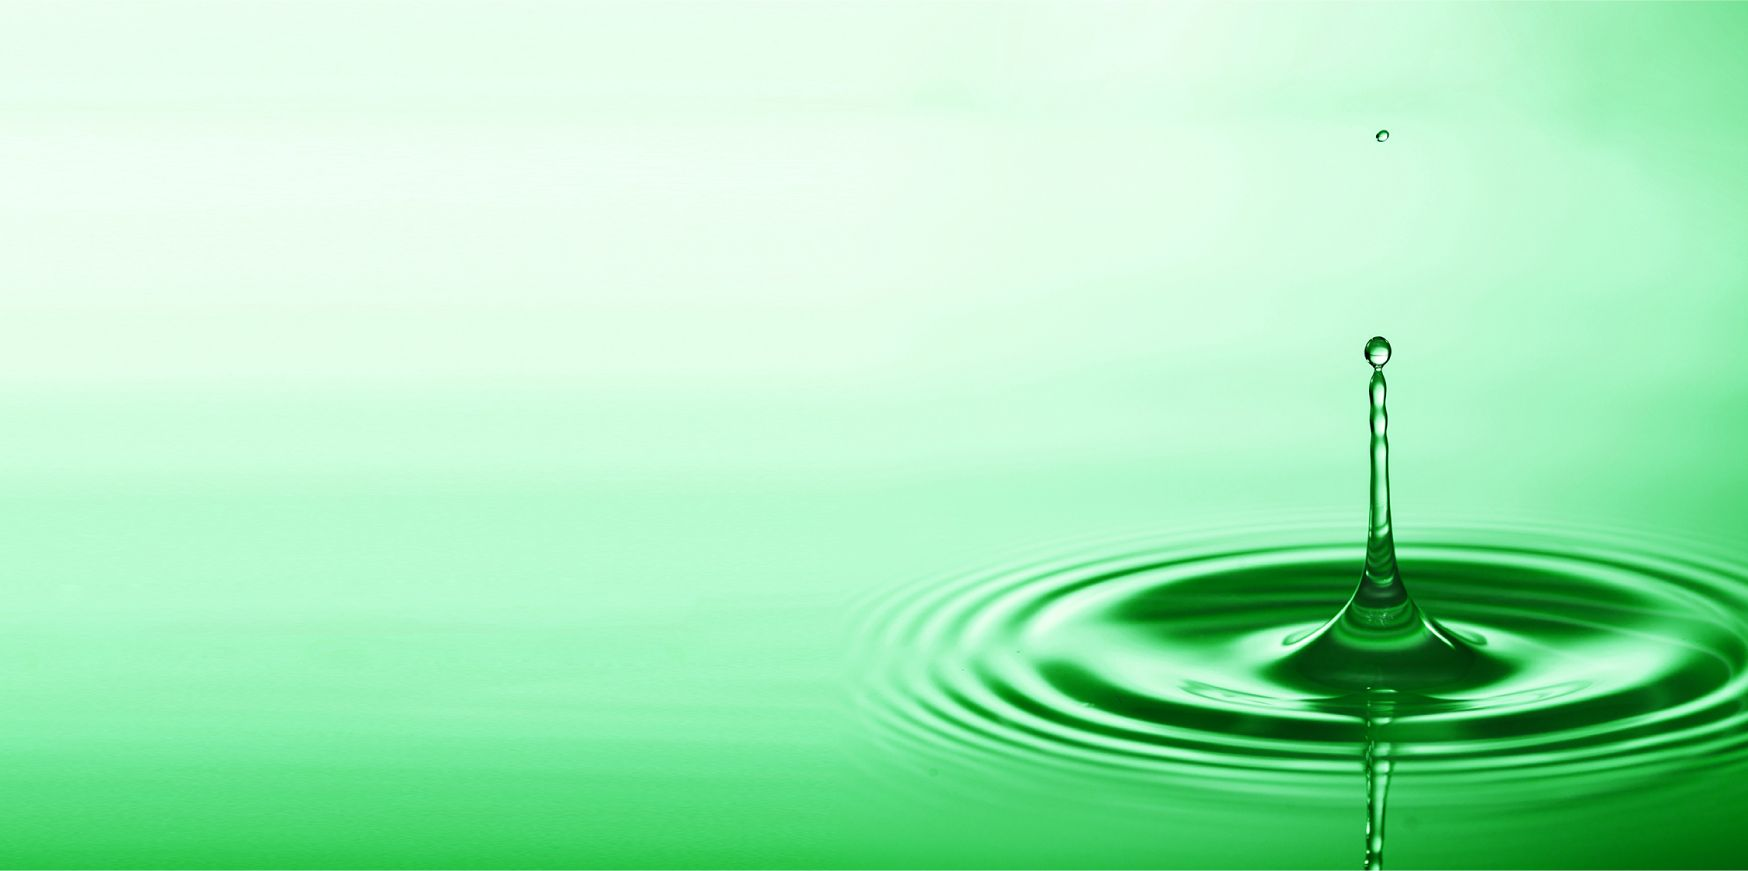 banner of Advocate for Aging Adults website - a drop of water